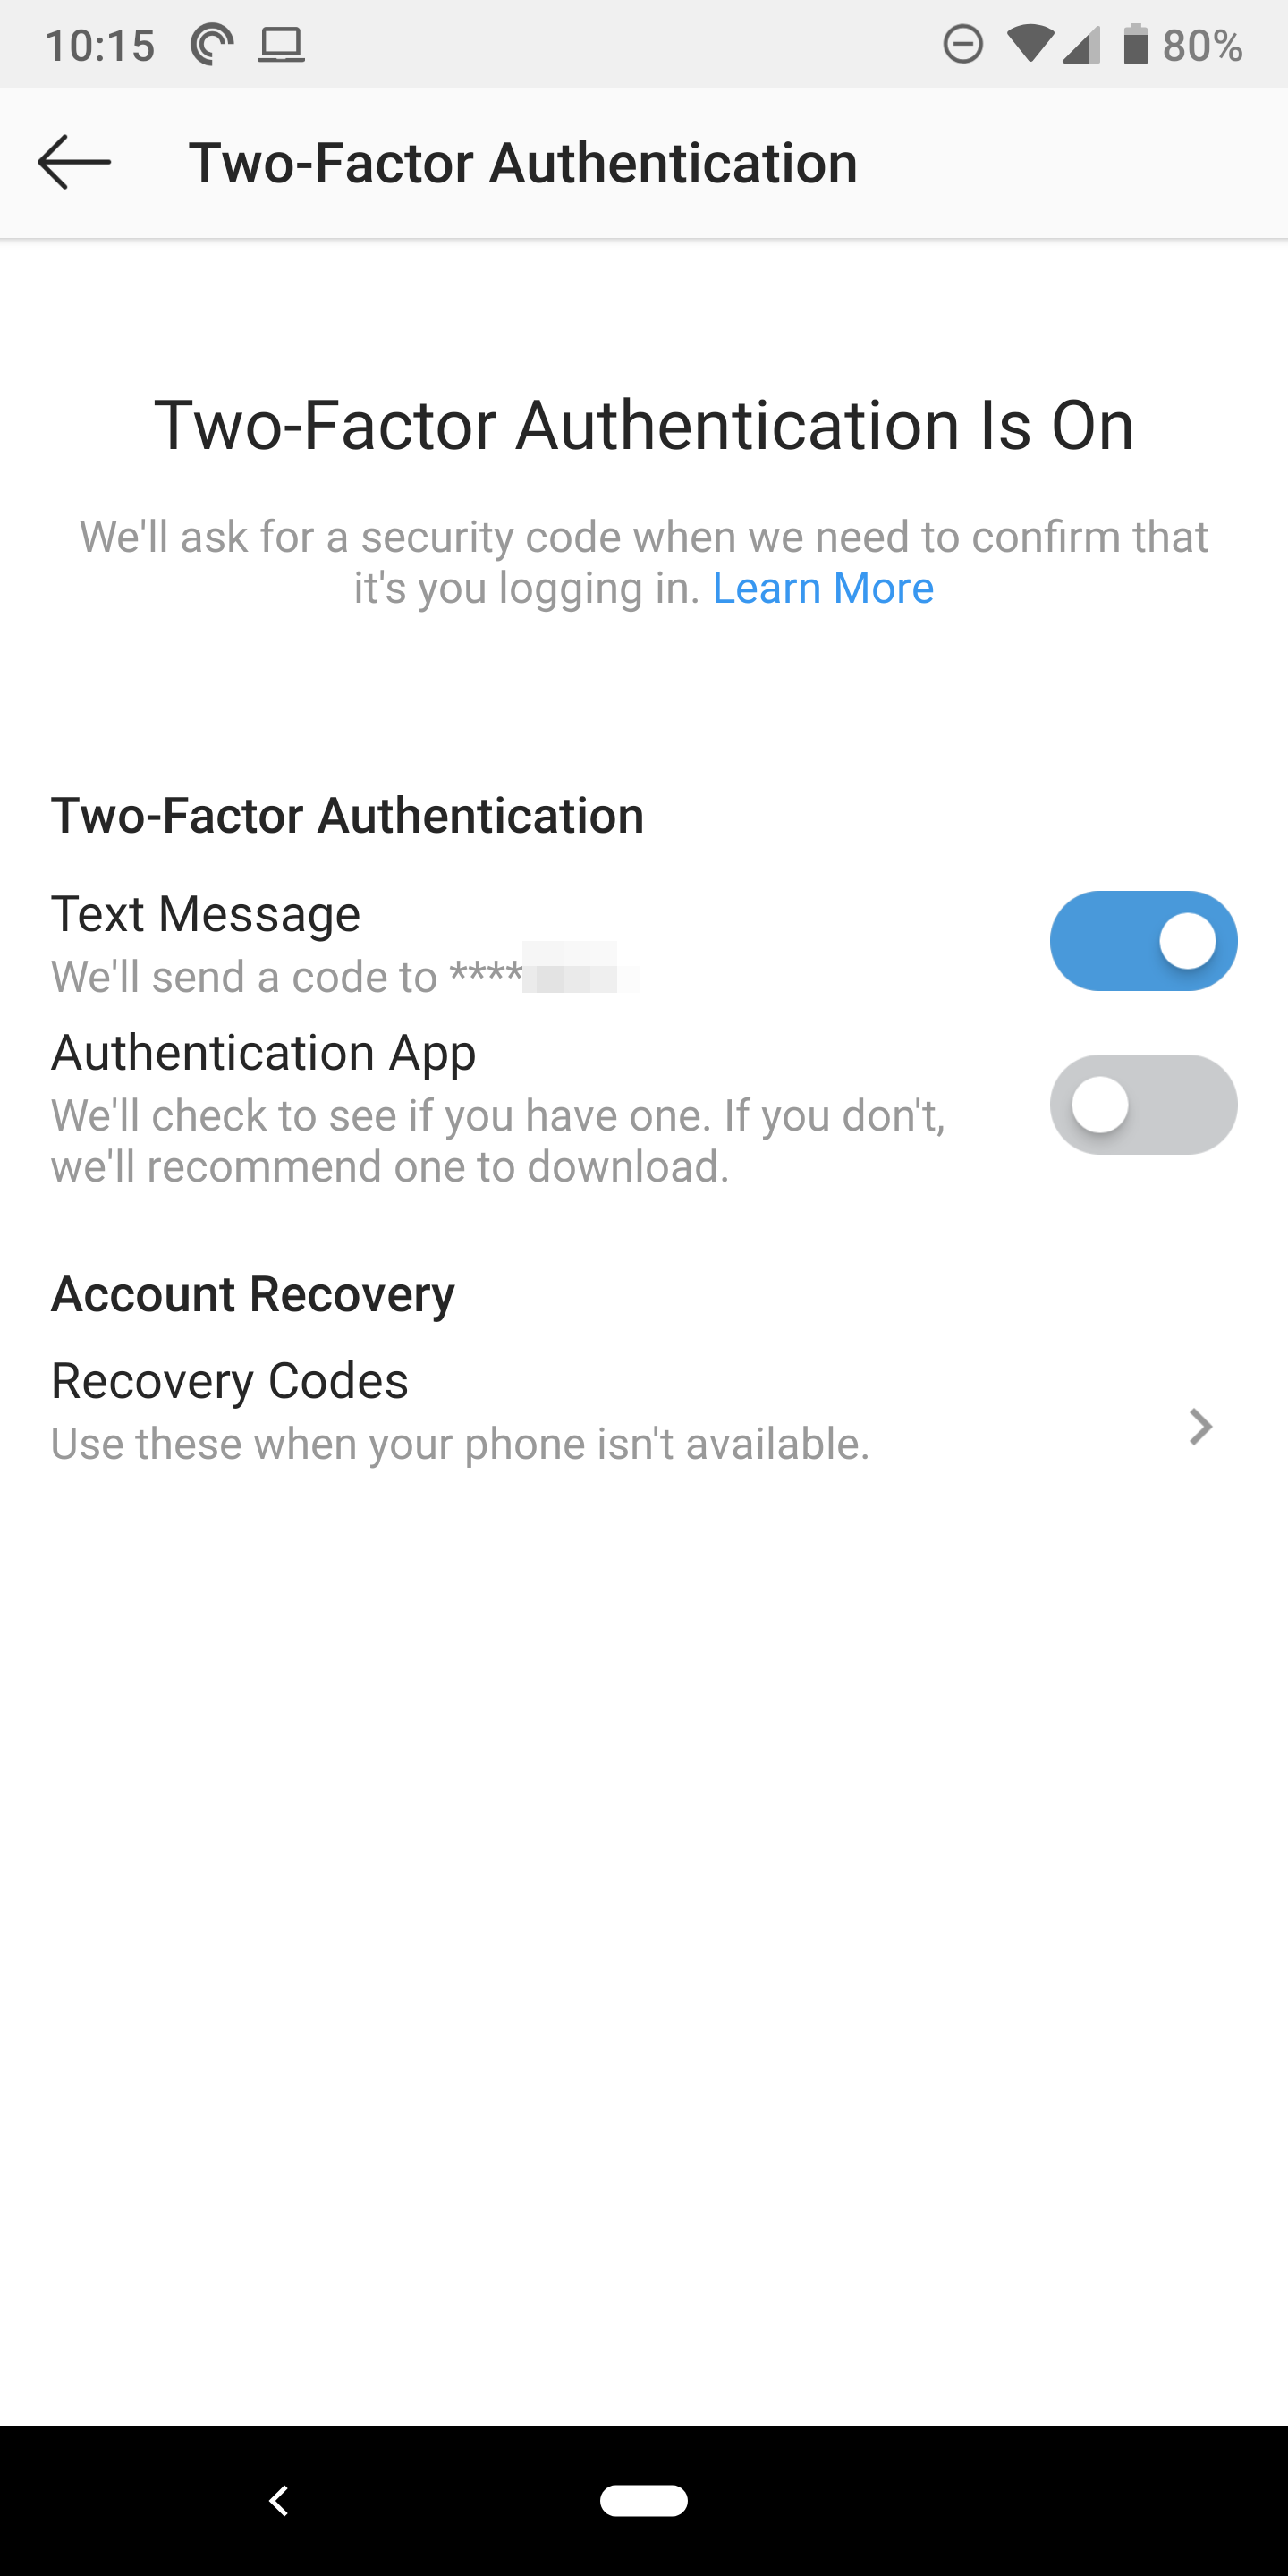 Instagram two-factor authentication app support is now live